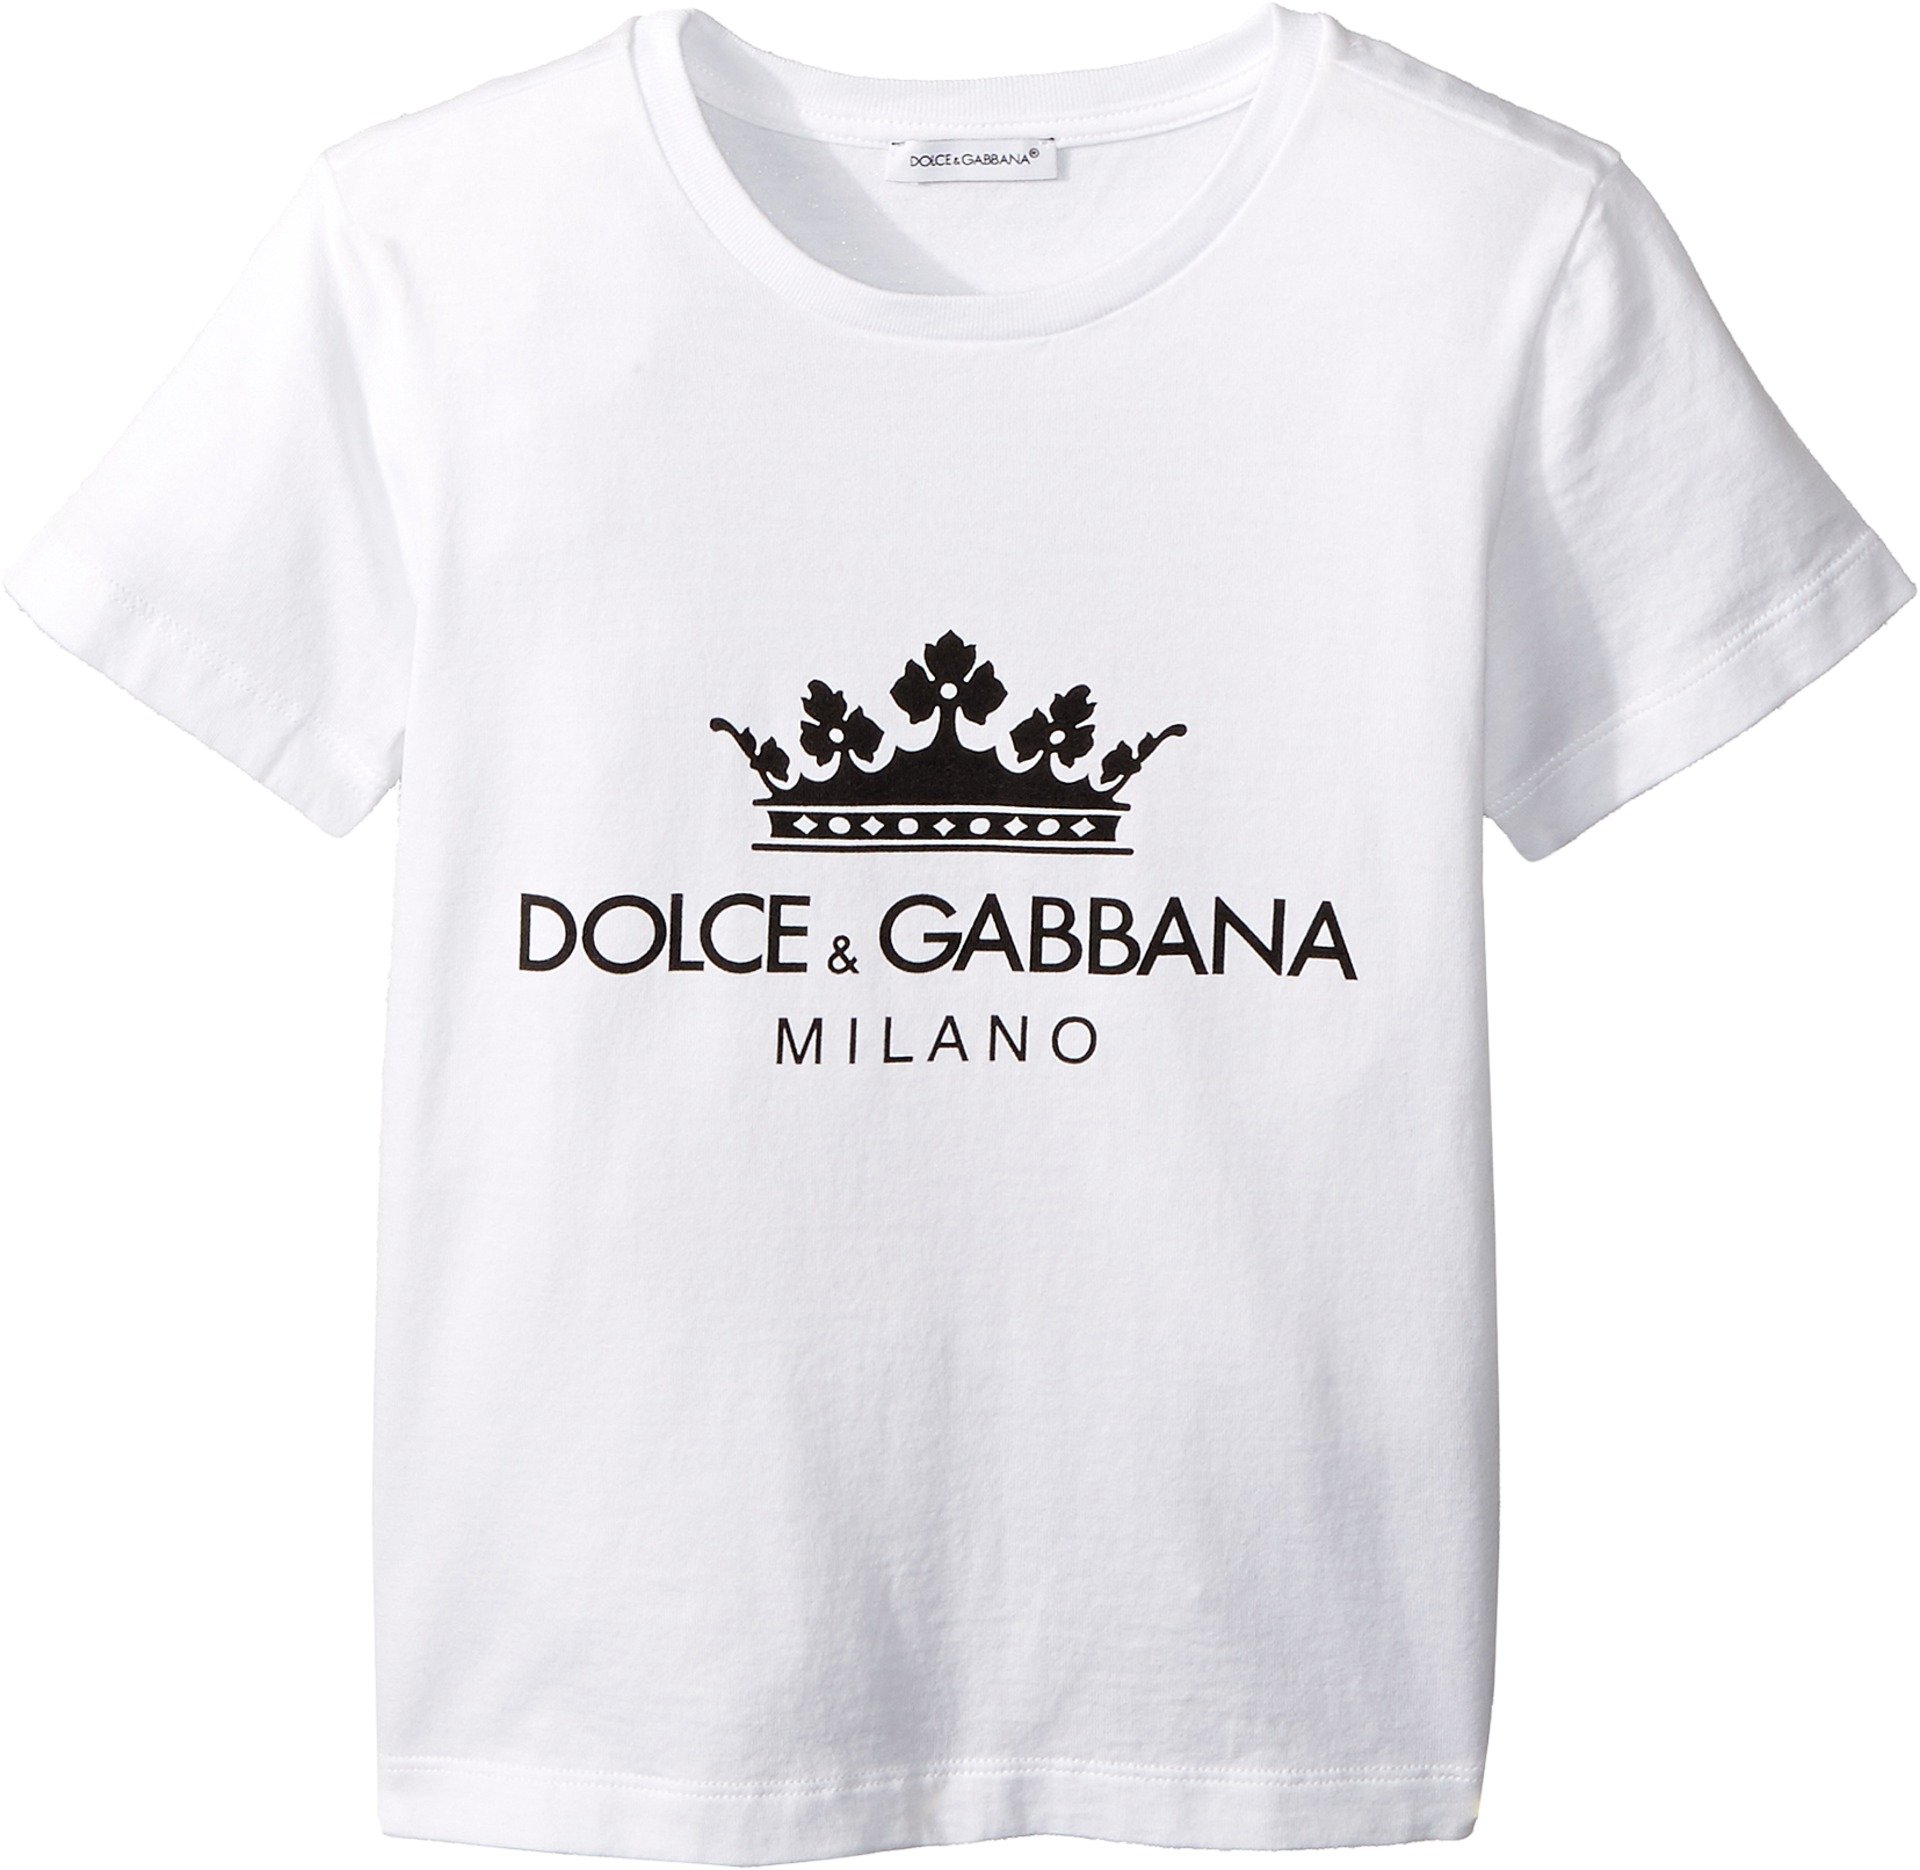 Dolce & Gabbana Kids Baby Girl's T-Shirt (Toddler/Little Kids) White 5